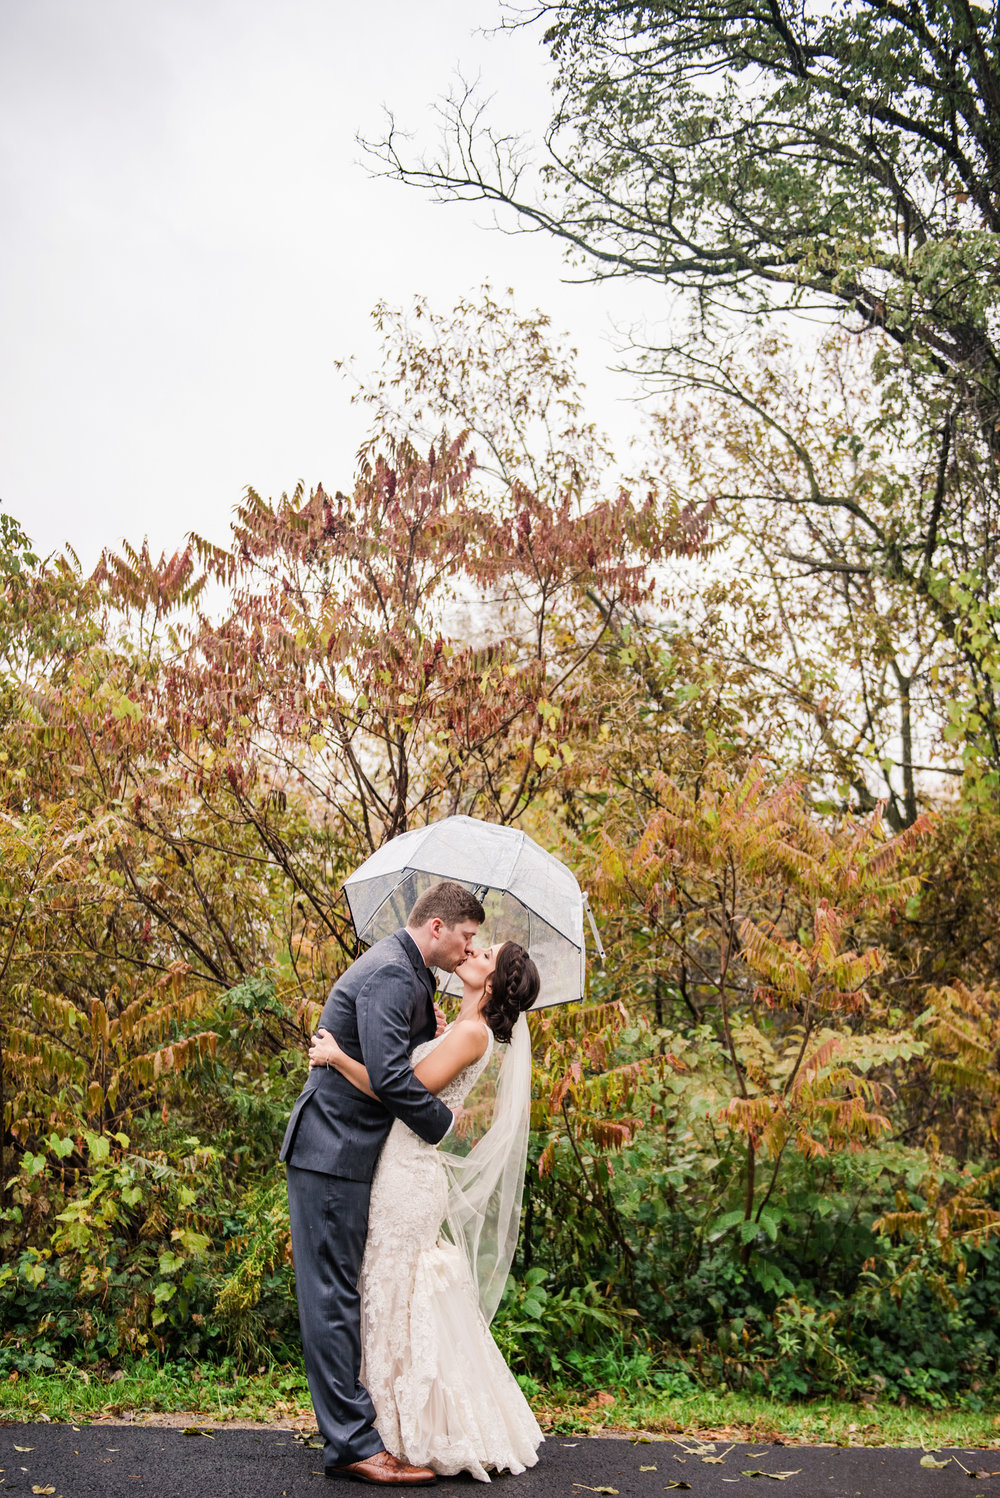 Wolf_Oak_Acres_Central_NY_Wedding_JILL_STUDIO_Rochester_NY_Photographer_DSC_7491.jpg